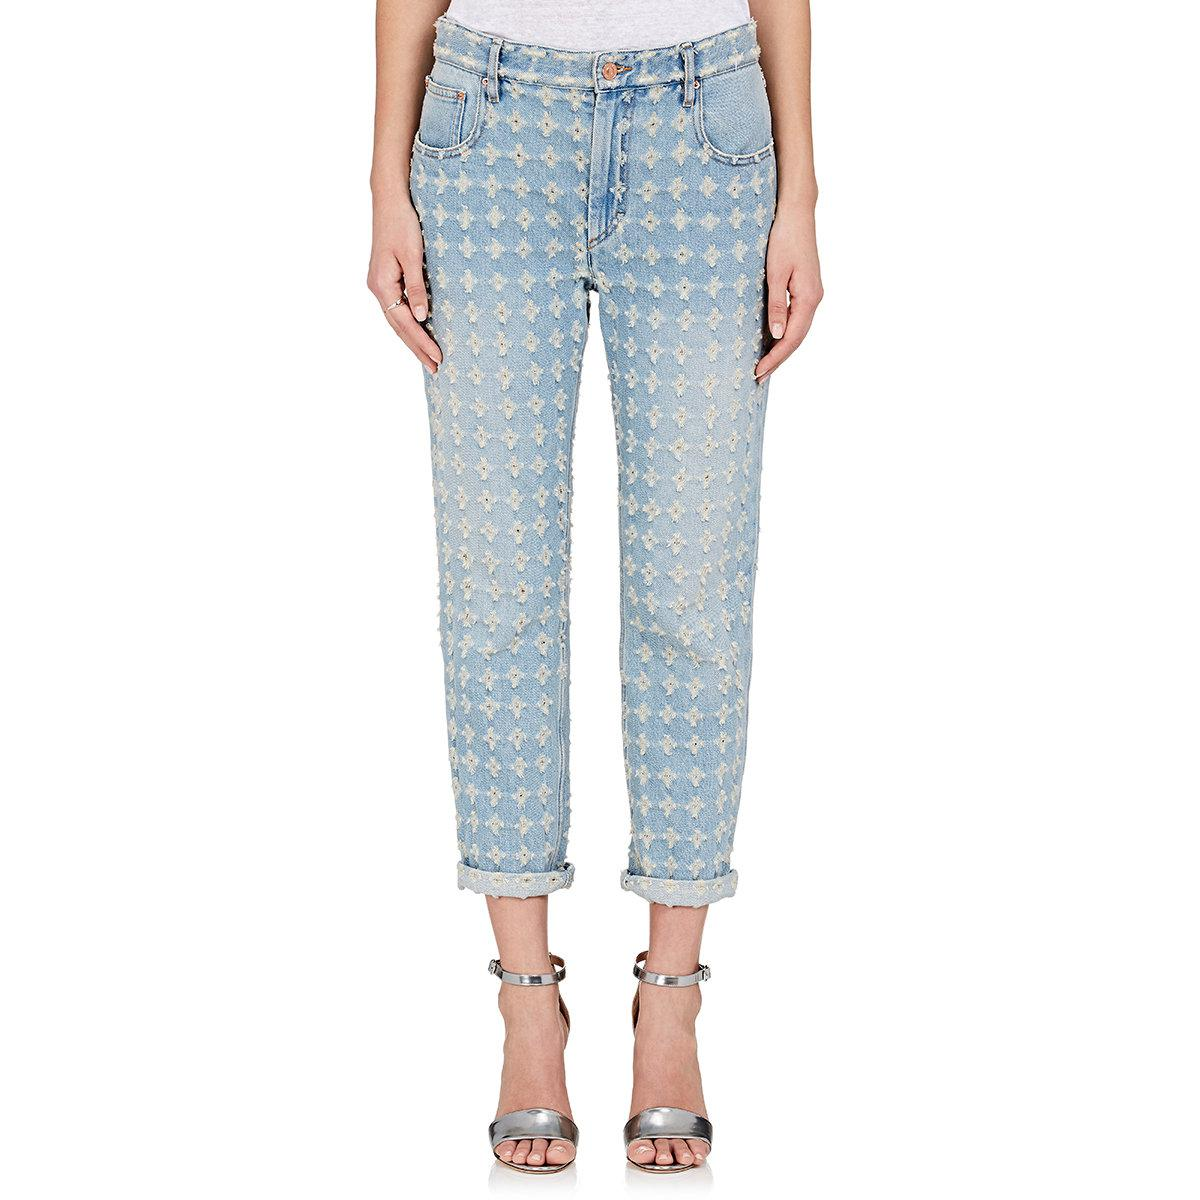 Corliff distressed jeans Isabel Marant Factory Price Cheap Price In China 4voWe